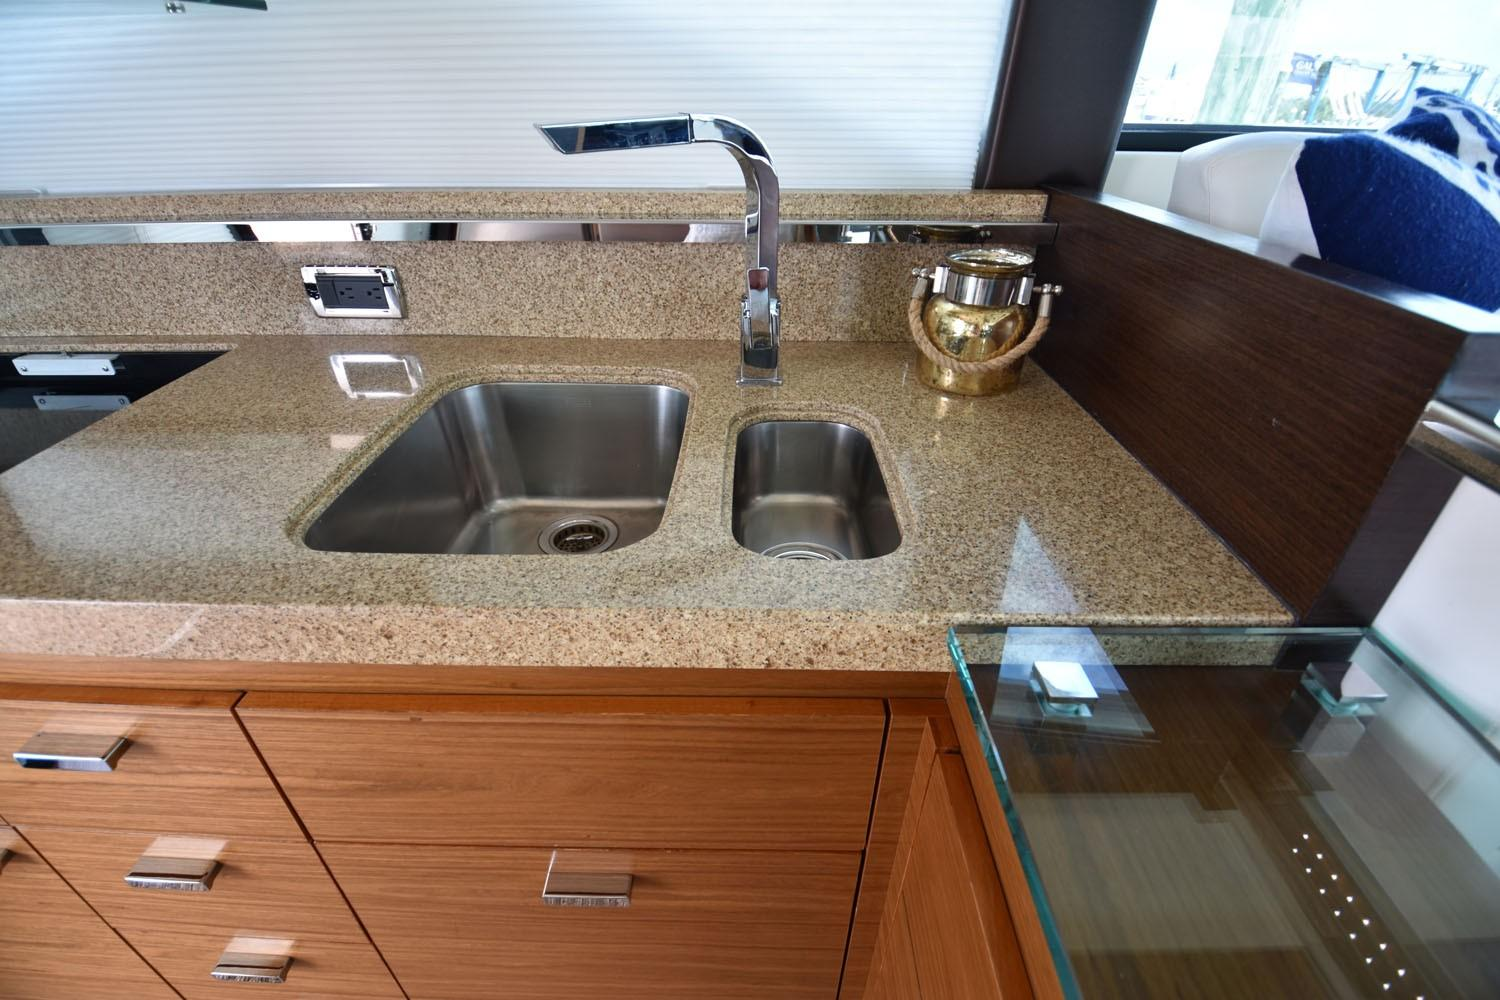 2014 Tiara 5000 Coupe Galley Sink